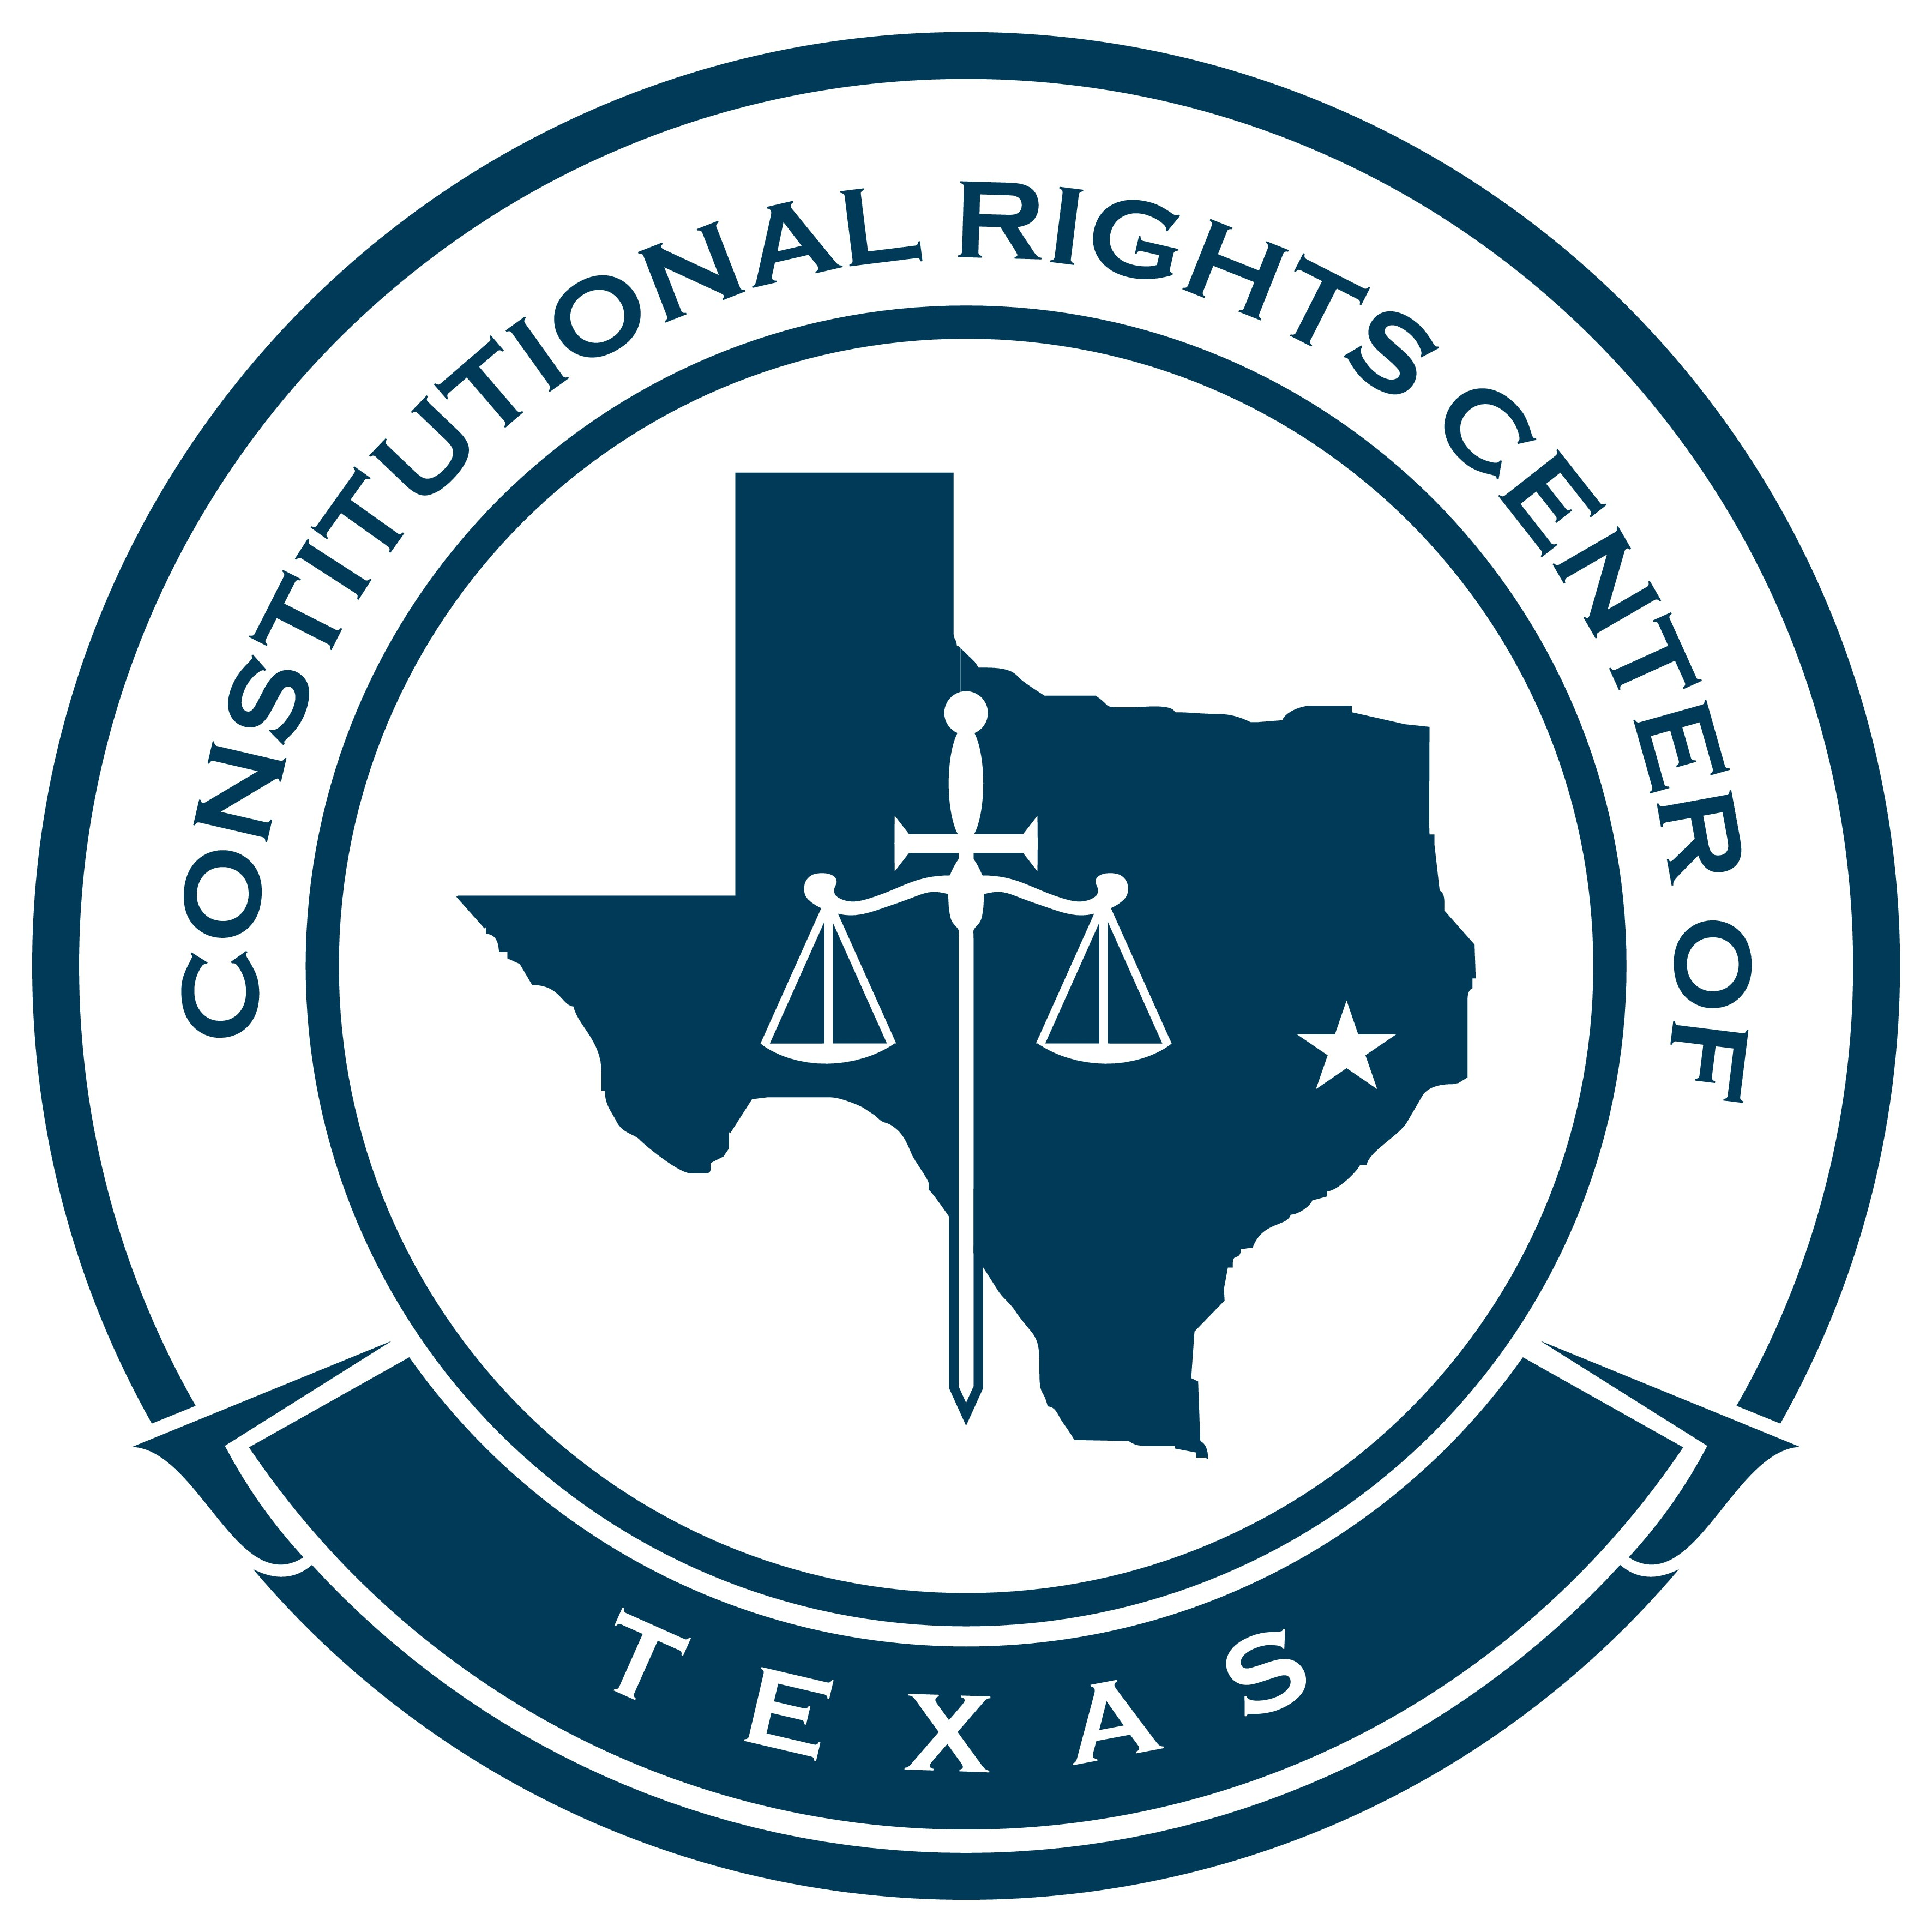 Create a logo for a non-profit dedicated to protecting the People's constitutional rights.